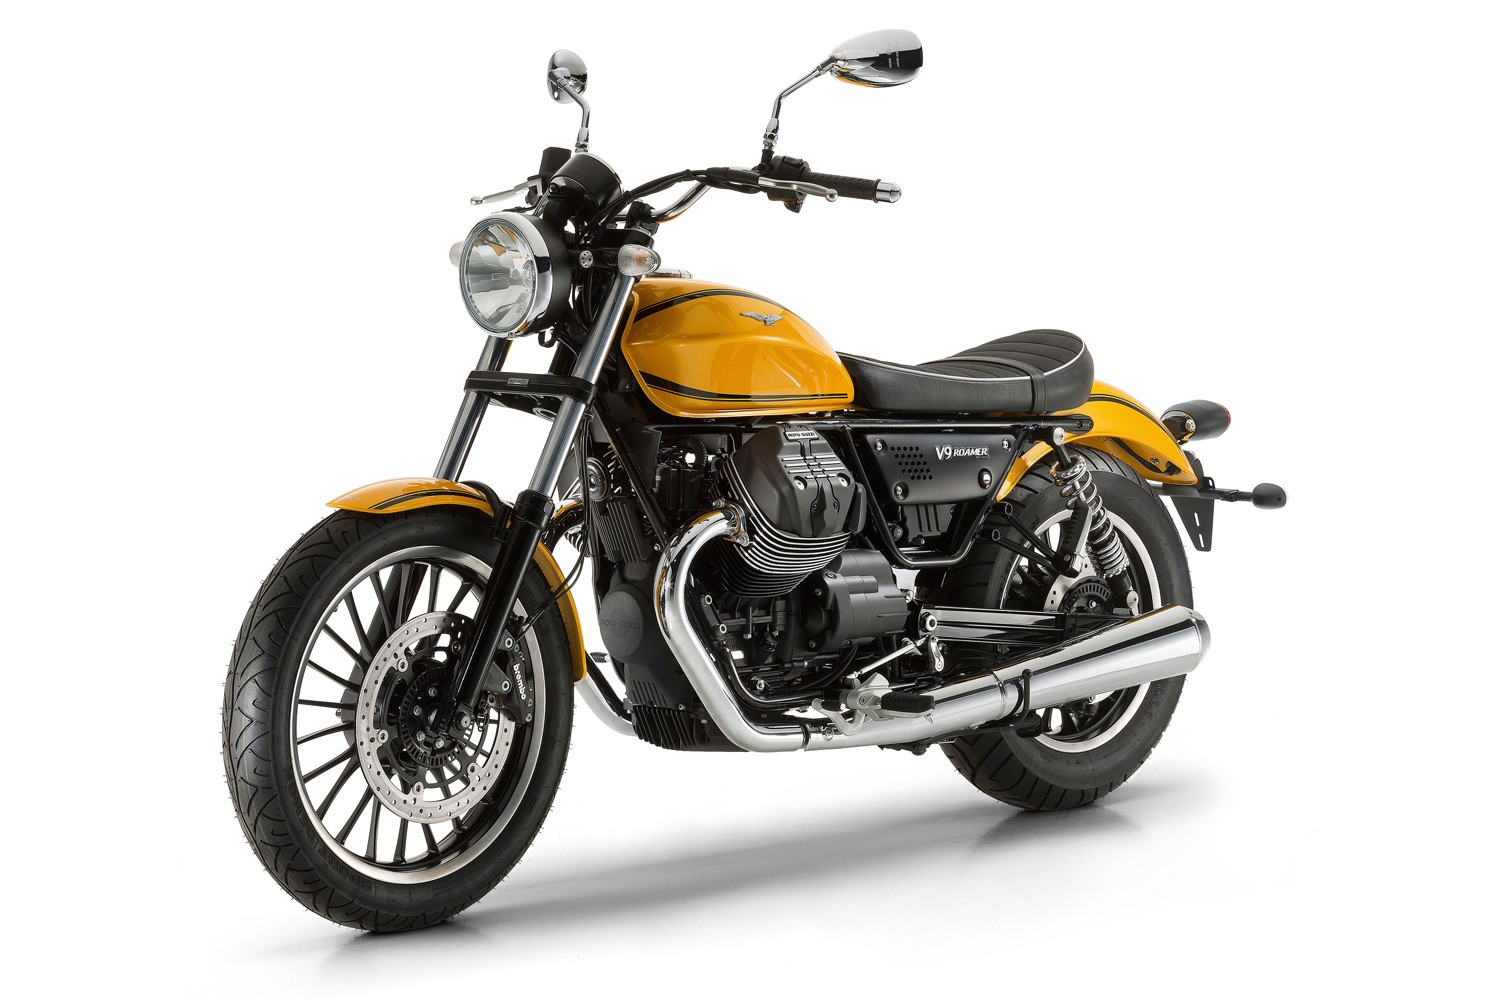 Moto Guzzi V Reviews